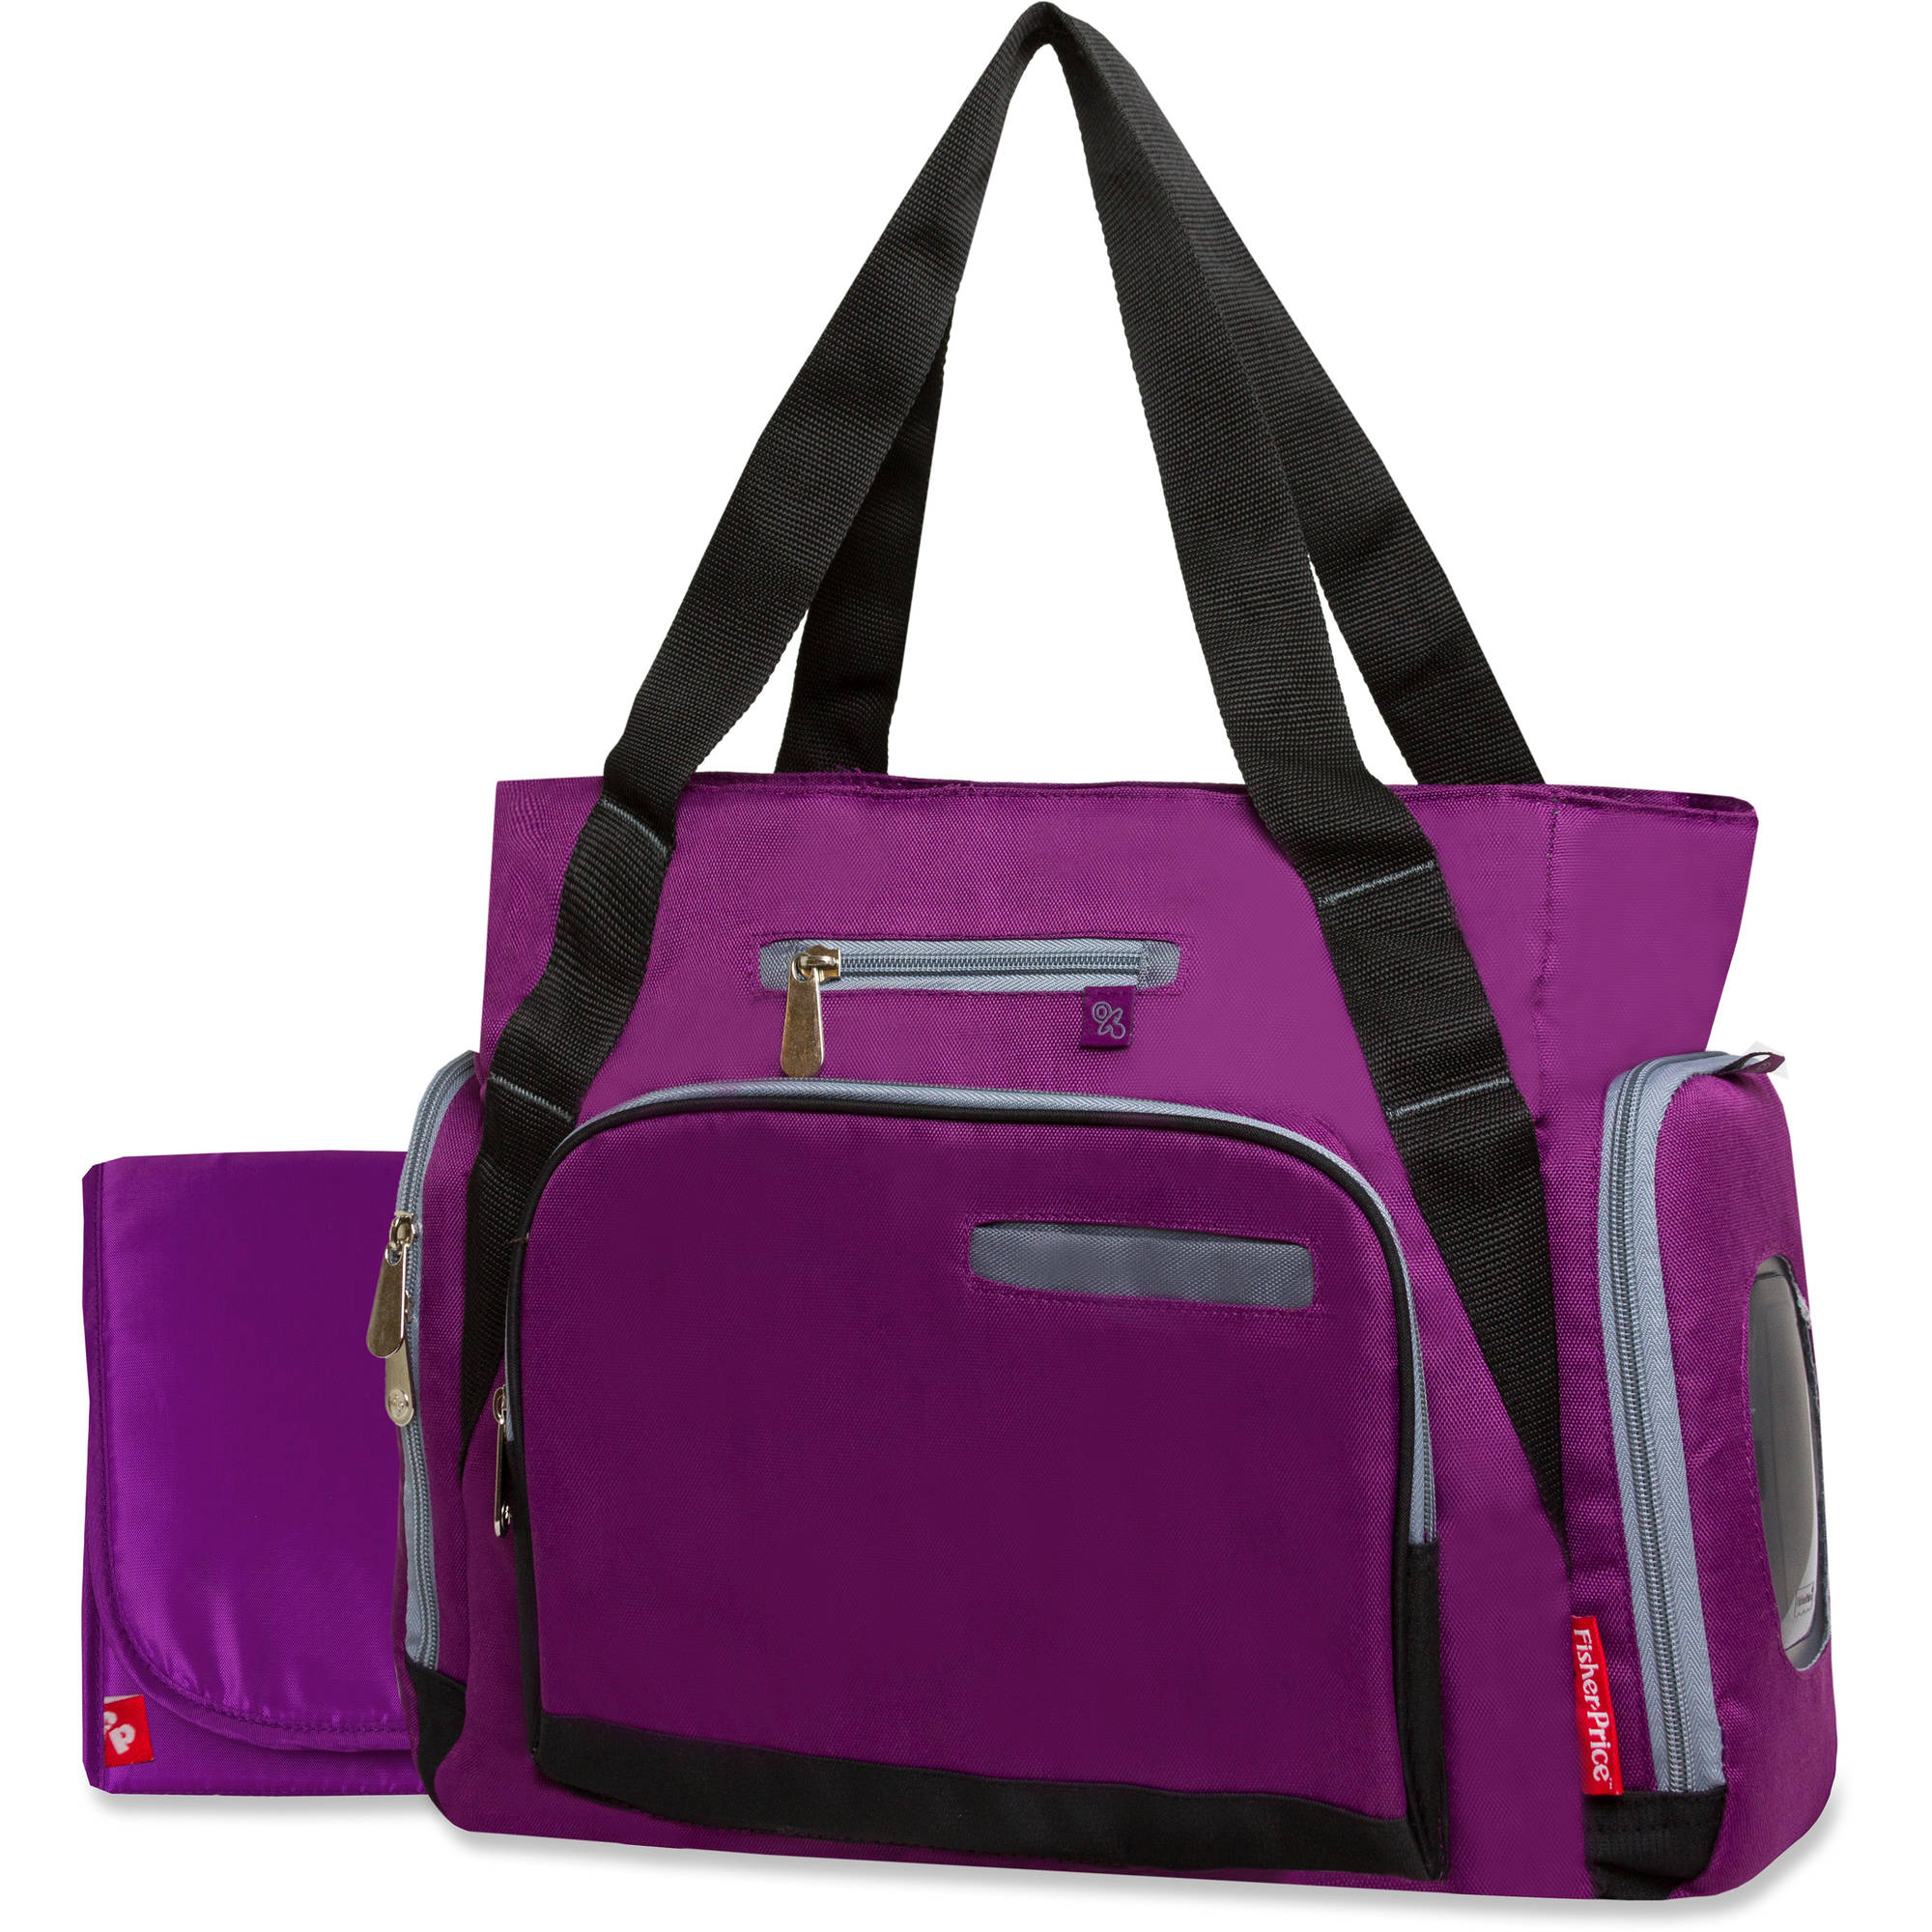 Fisher-Price Diaper Bag, Purple/Black